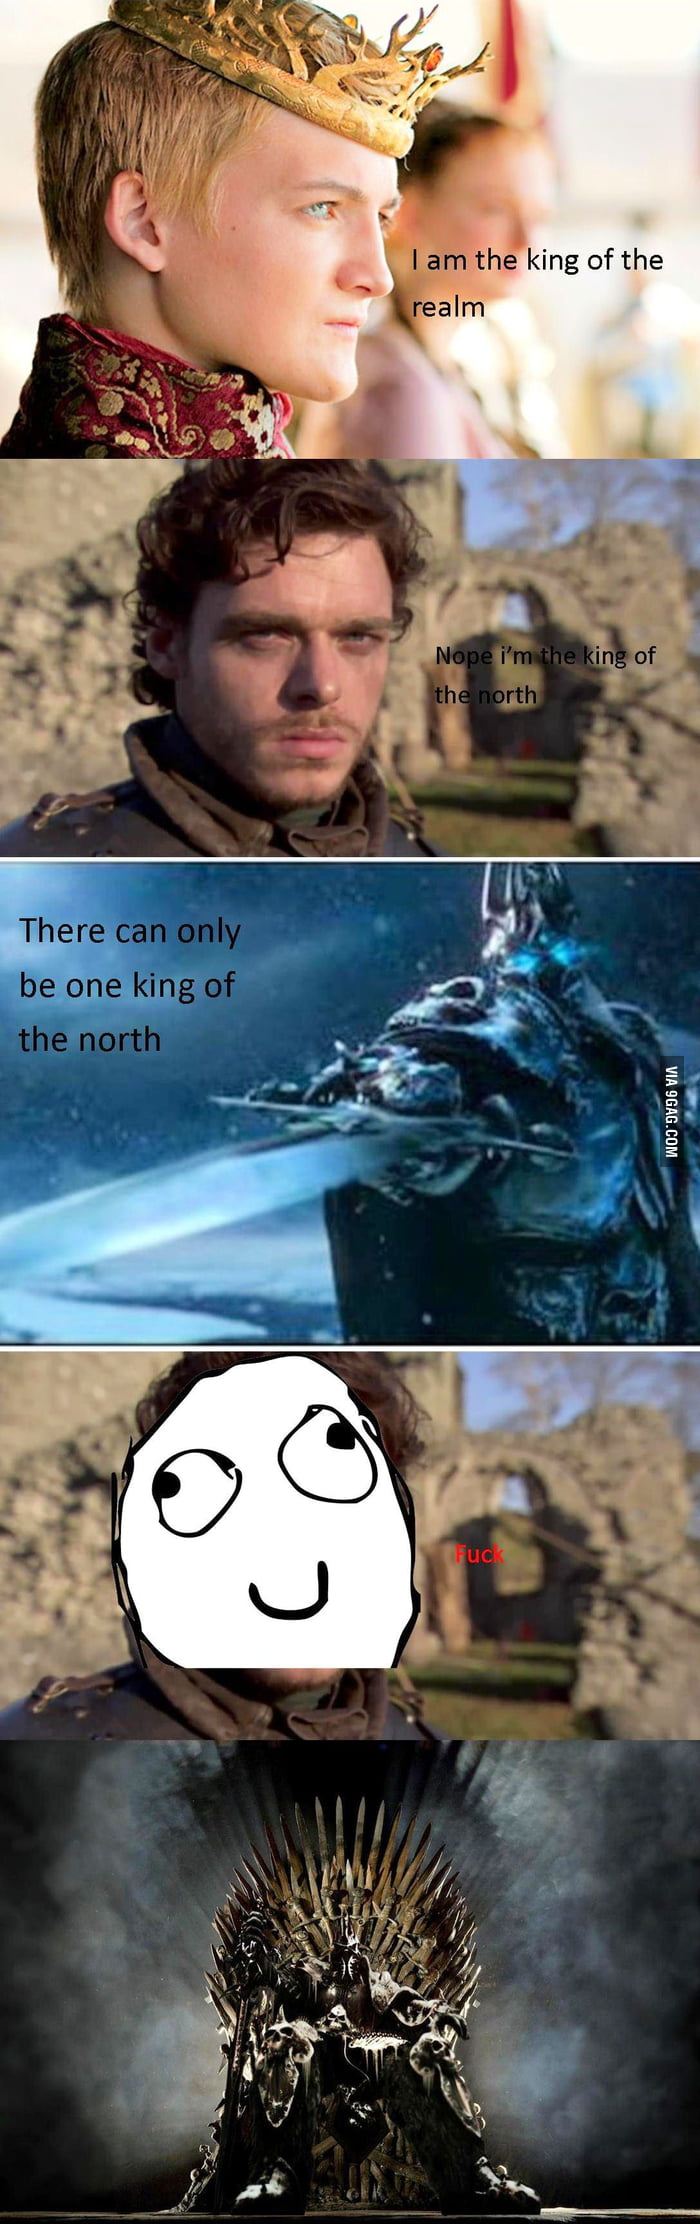 Game of Thrones VS. WoW